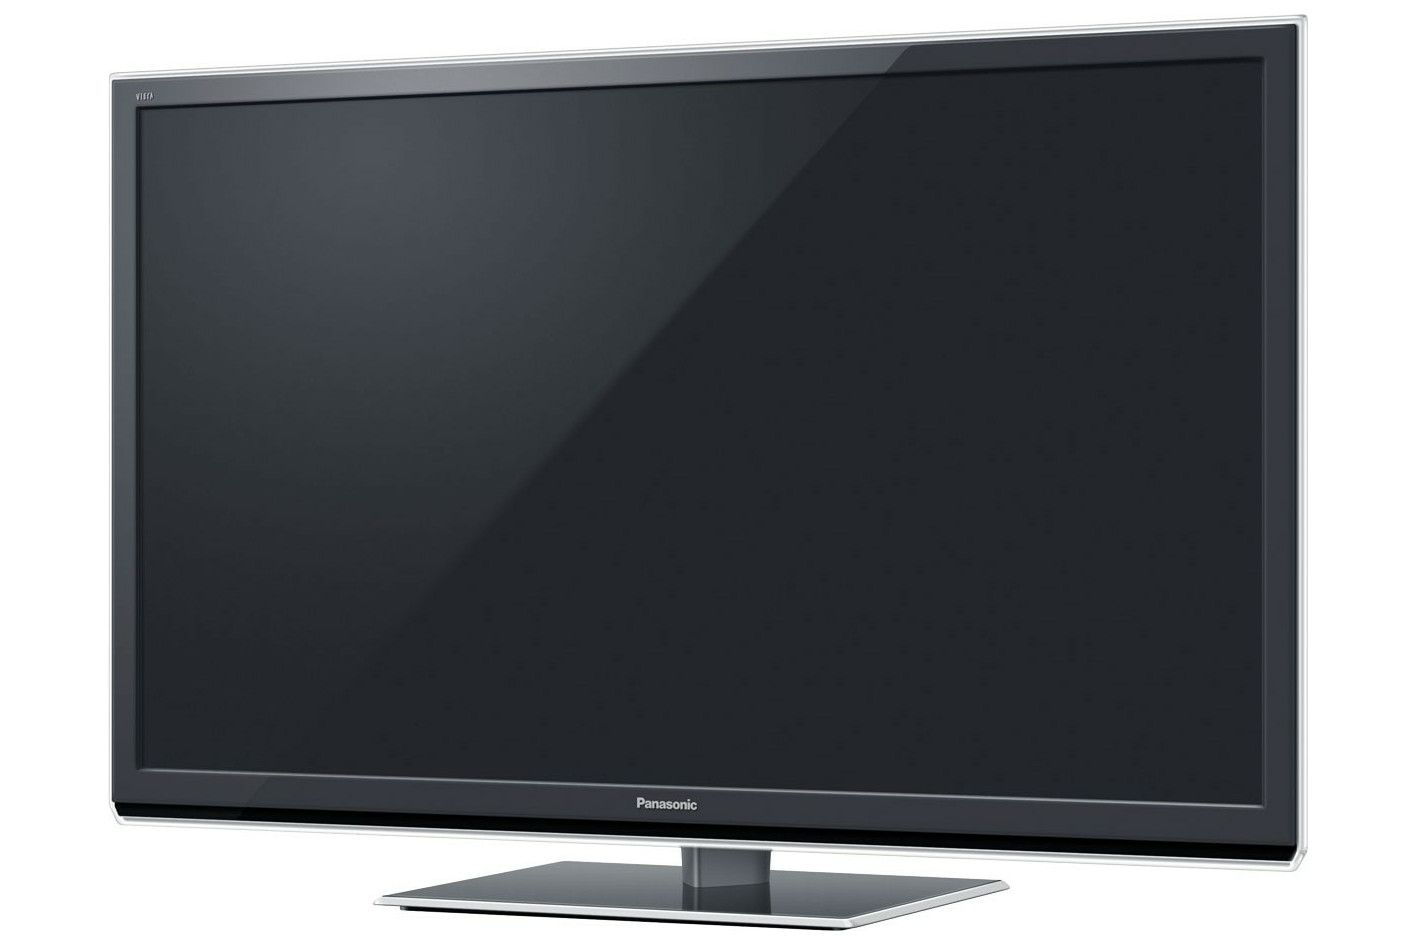 Panasonic VIERA ST50A Review: This plasma TV looks great, and is